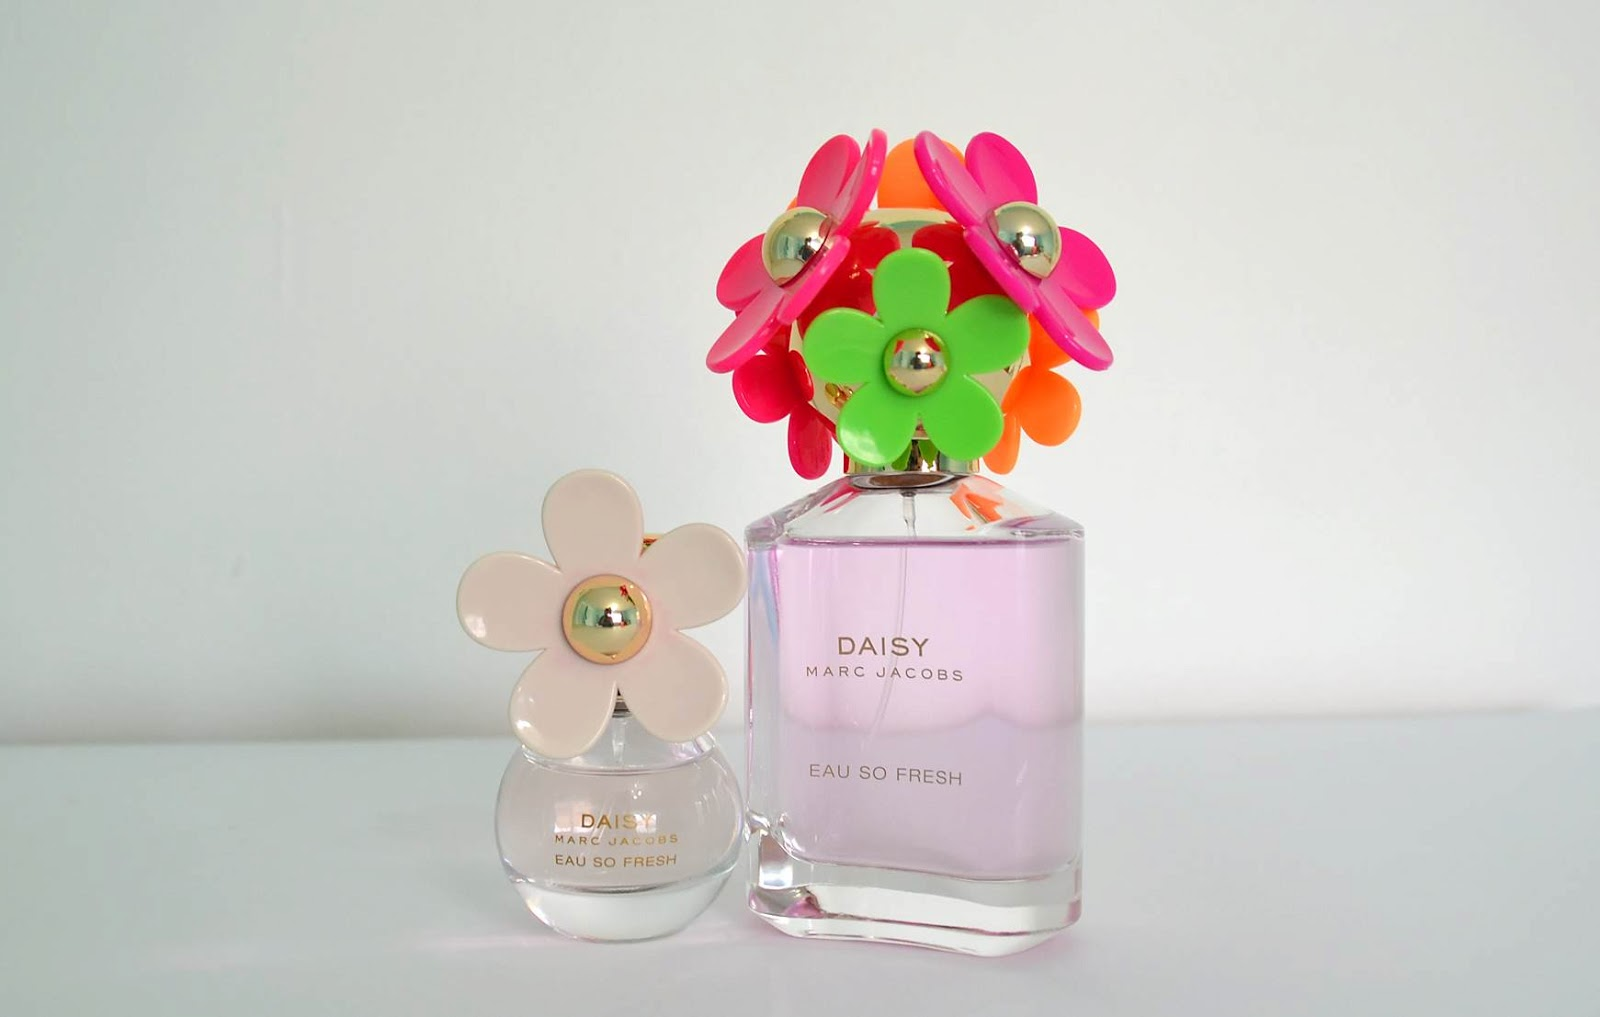 Freckled elle marc jacobs daisy eau so fresh sunshine edition izmirmasajfo Image collections